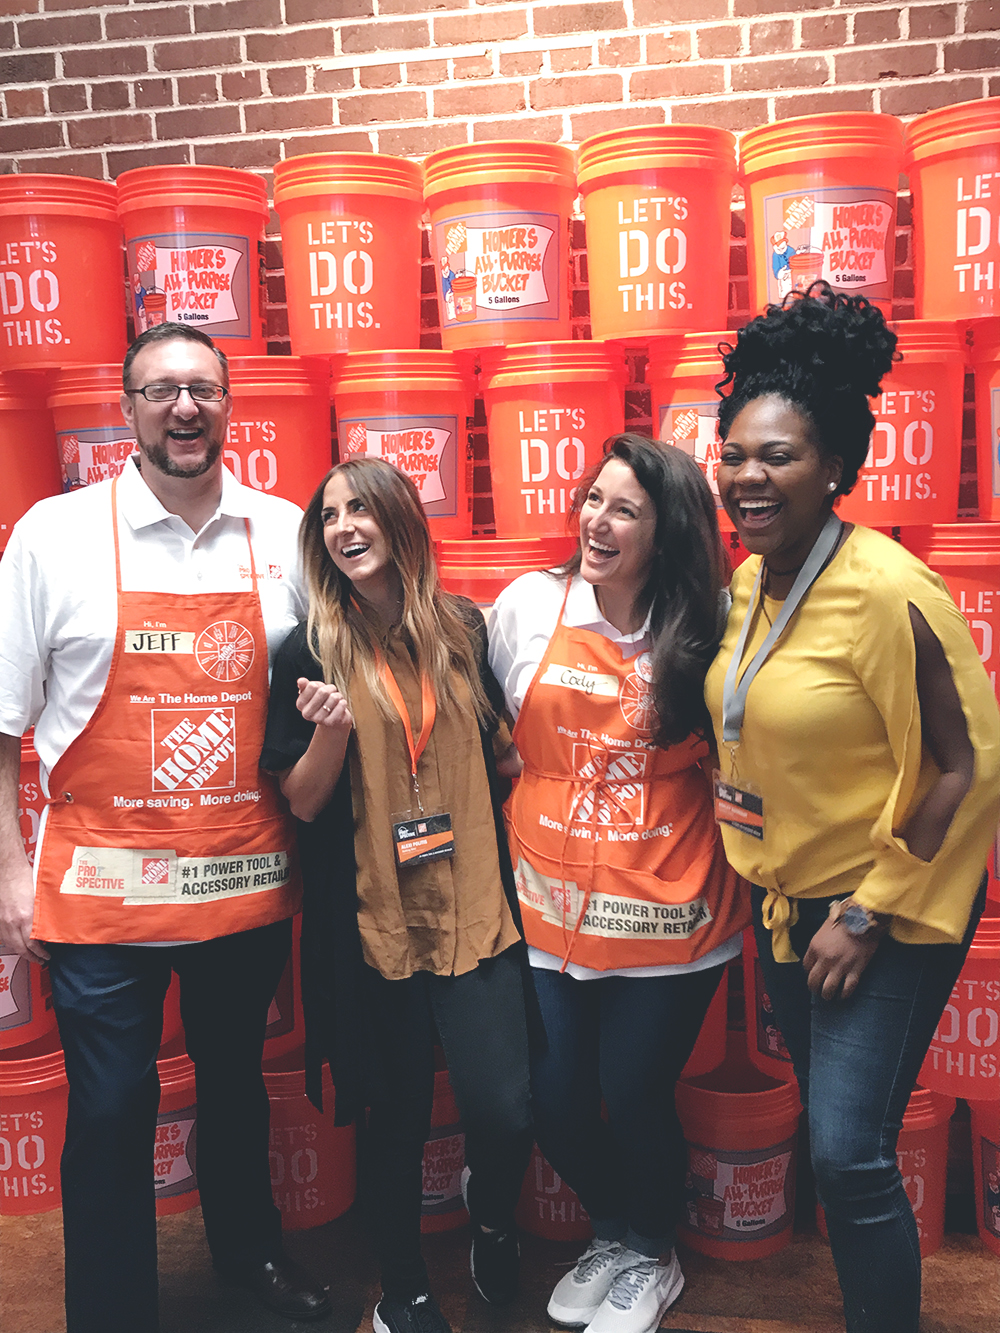 The Home Depot hosted an exclusive blogger event and it was incredible!